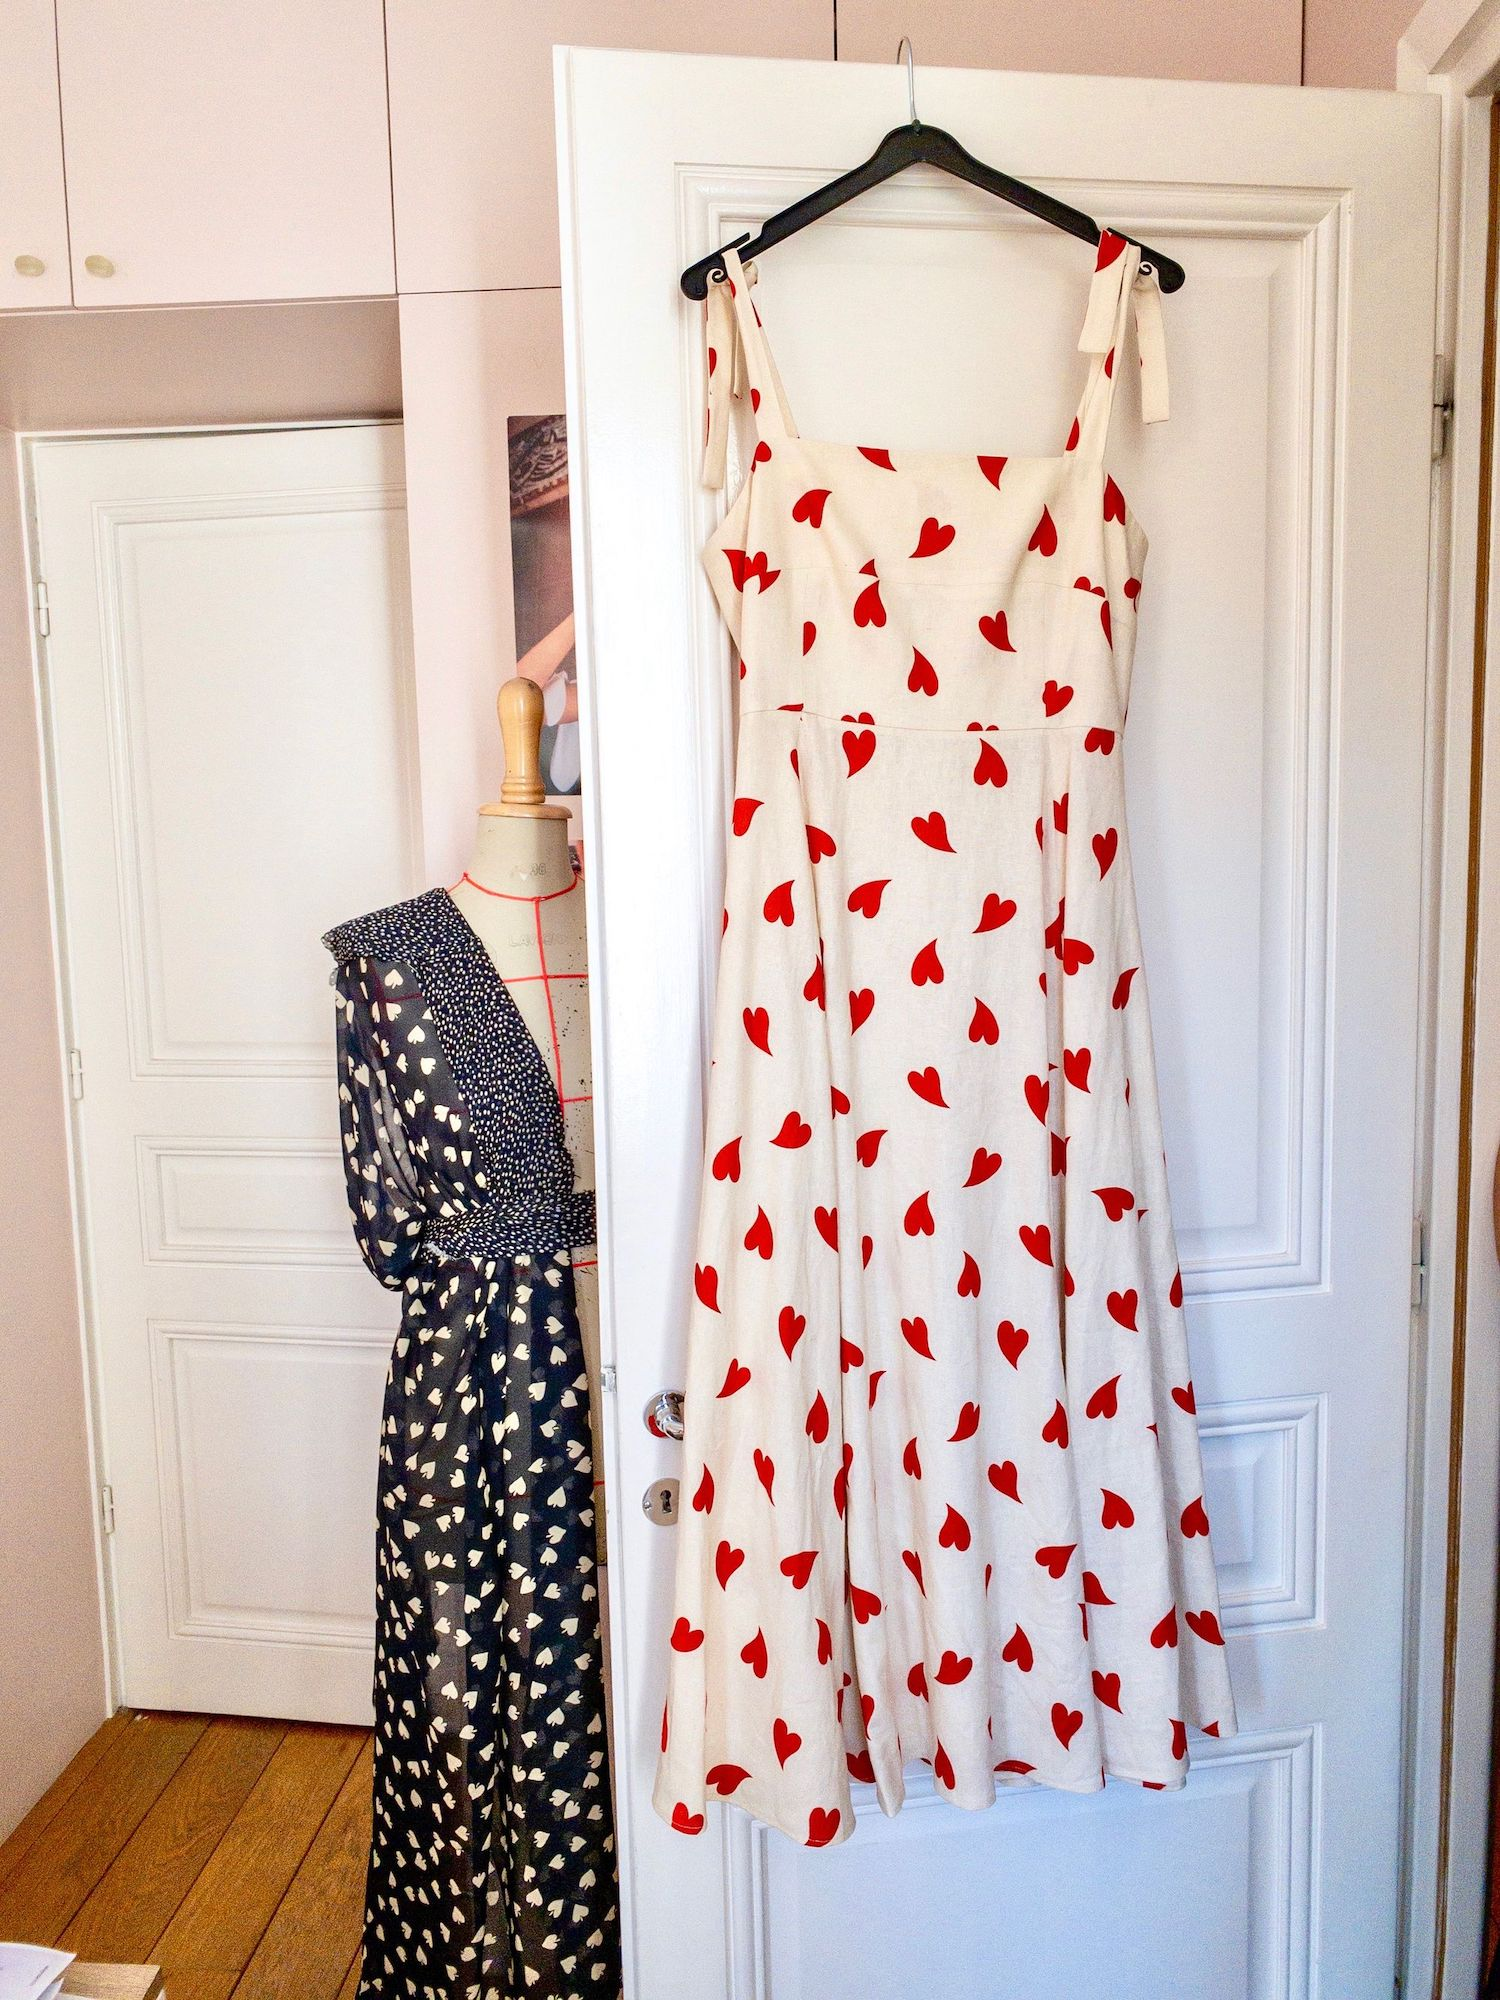 Mirae Red heart print dress